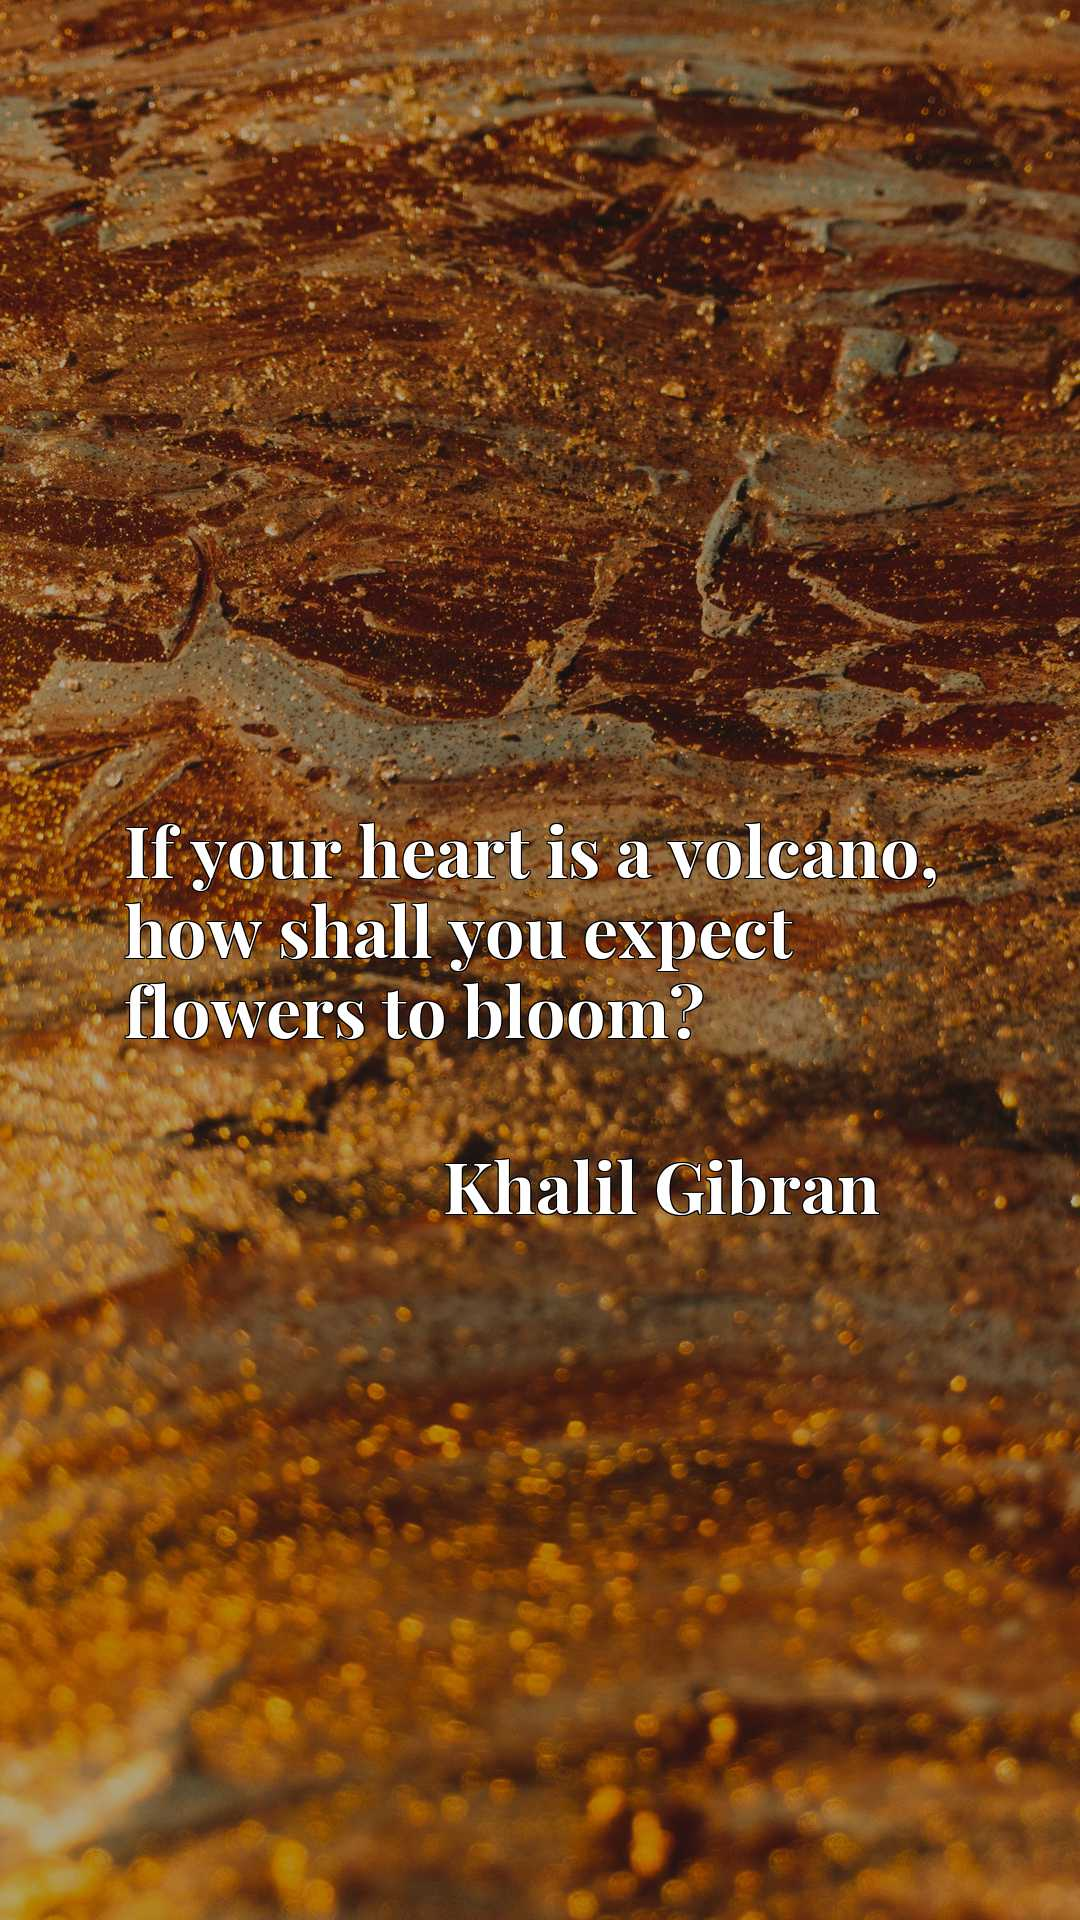 Quote Picture :If your heart is a volcano, how shall you expect flowers to bloom?